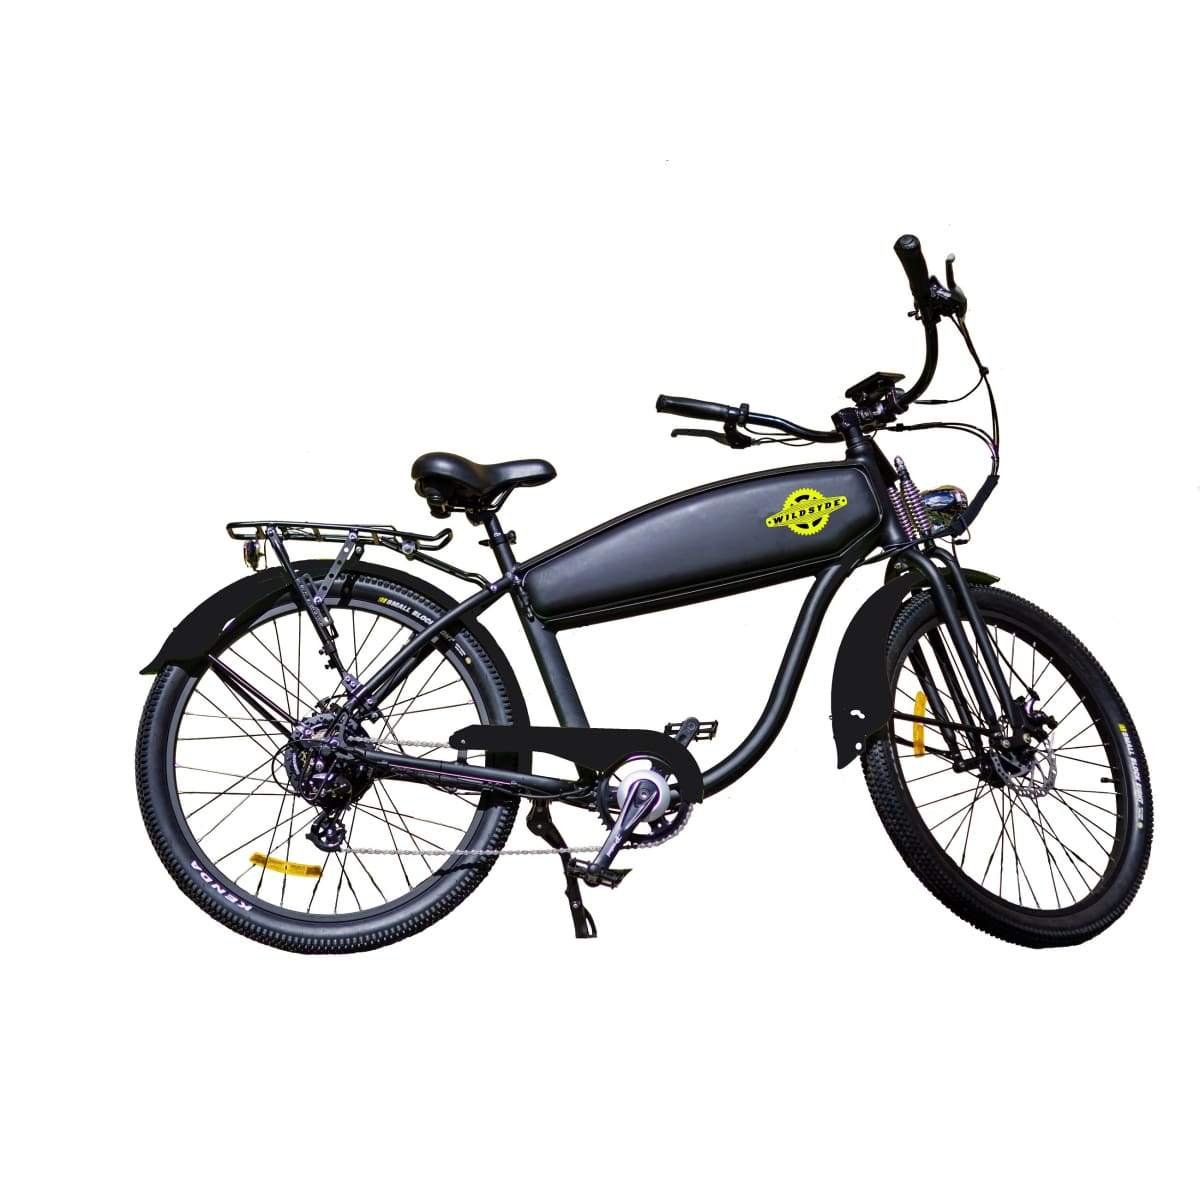 Electric Cruiser Bike Wildsyde Shadow 500W 36V (Pre-Order) - Black Matte - Electric Bike $2695.95